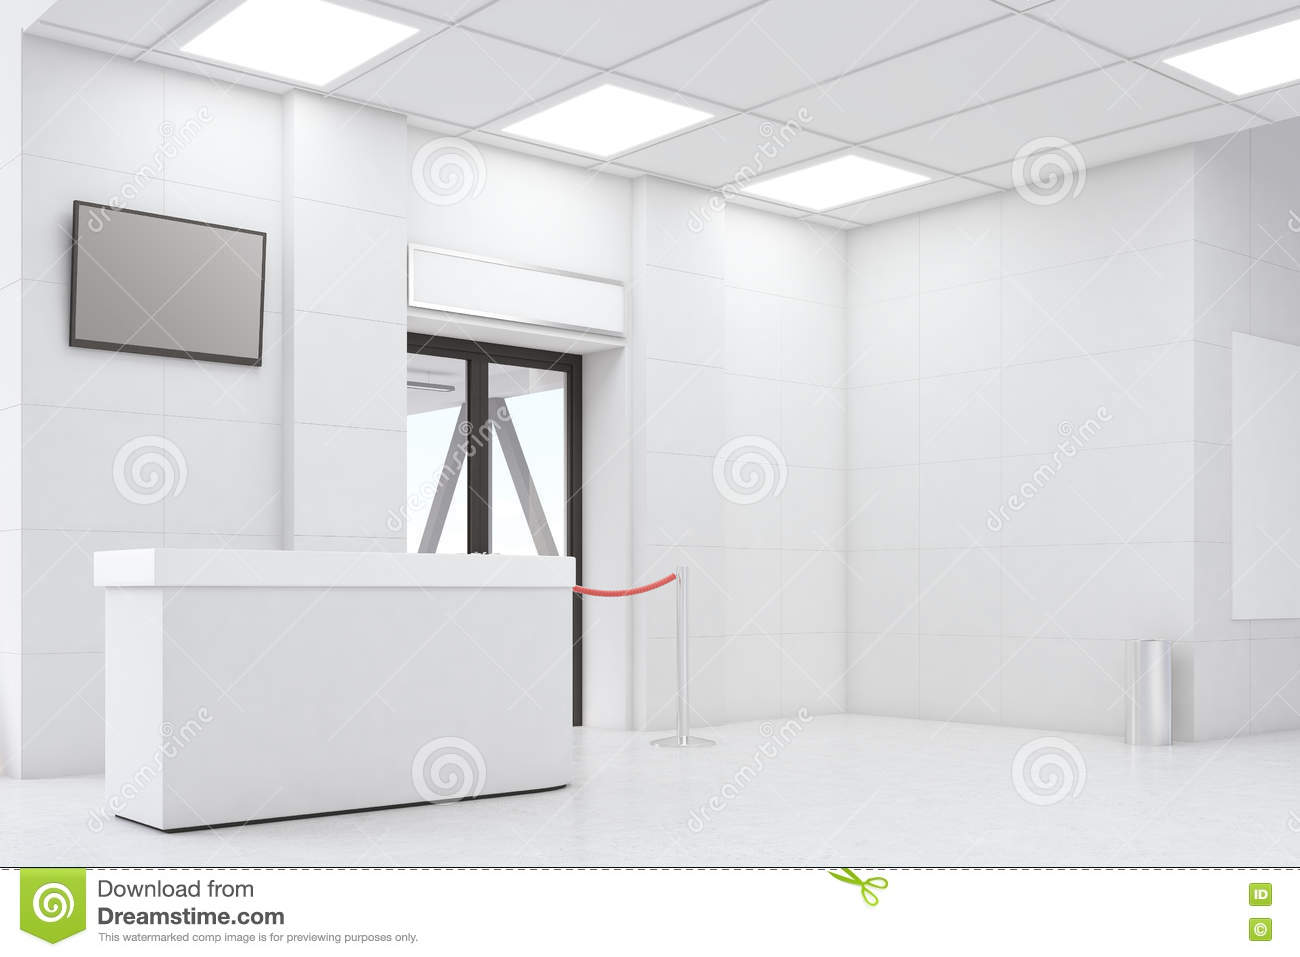 Side view office set Mock Side View Of An Airport Waiting Room With Desk Tv Set Door And Rope White Walls Concept Of Travelling 3d Rendering Mock Up Dreamstimecom Side View Of White Walls Of Airport Stock Illustration